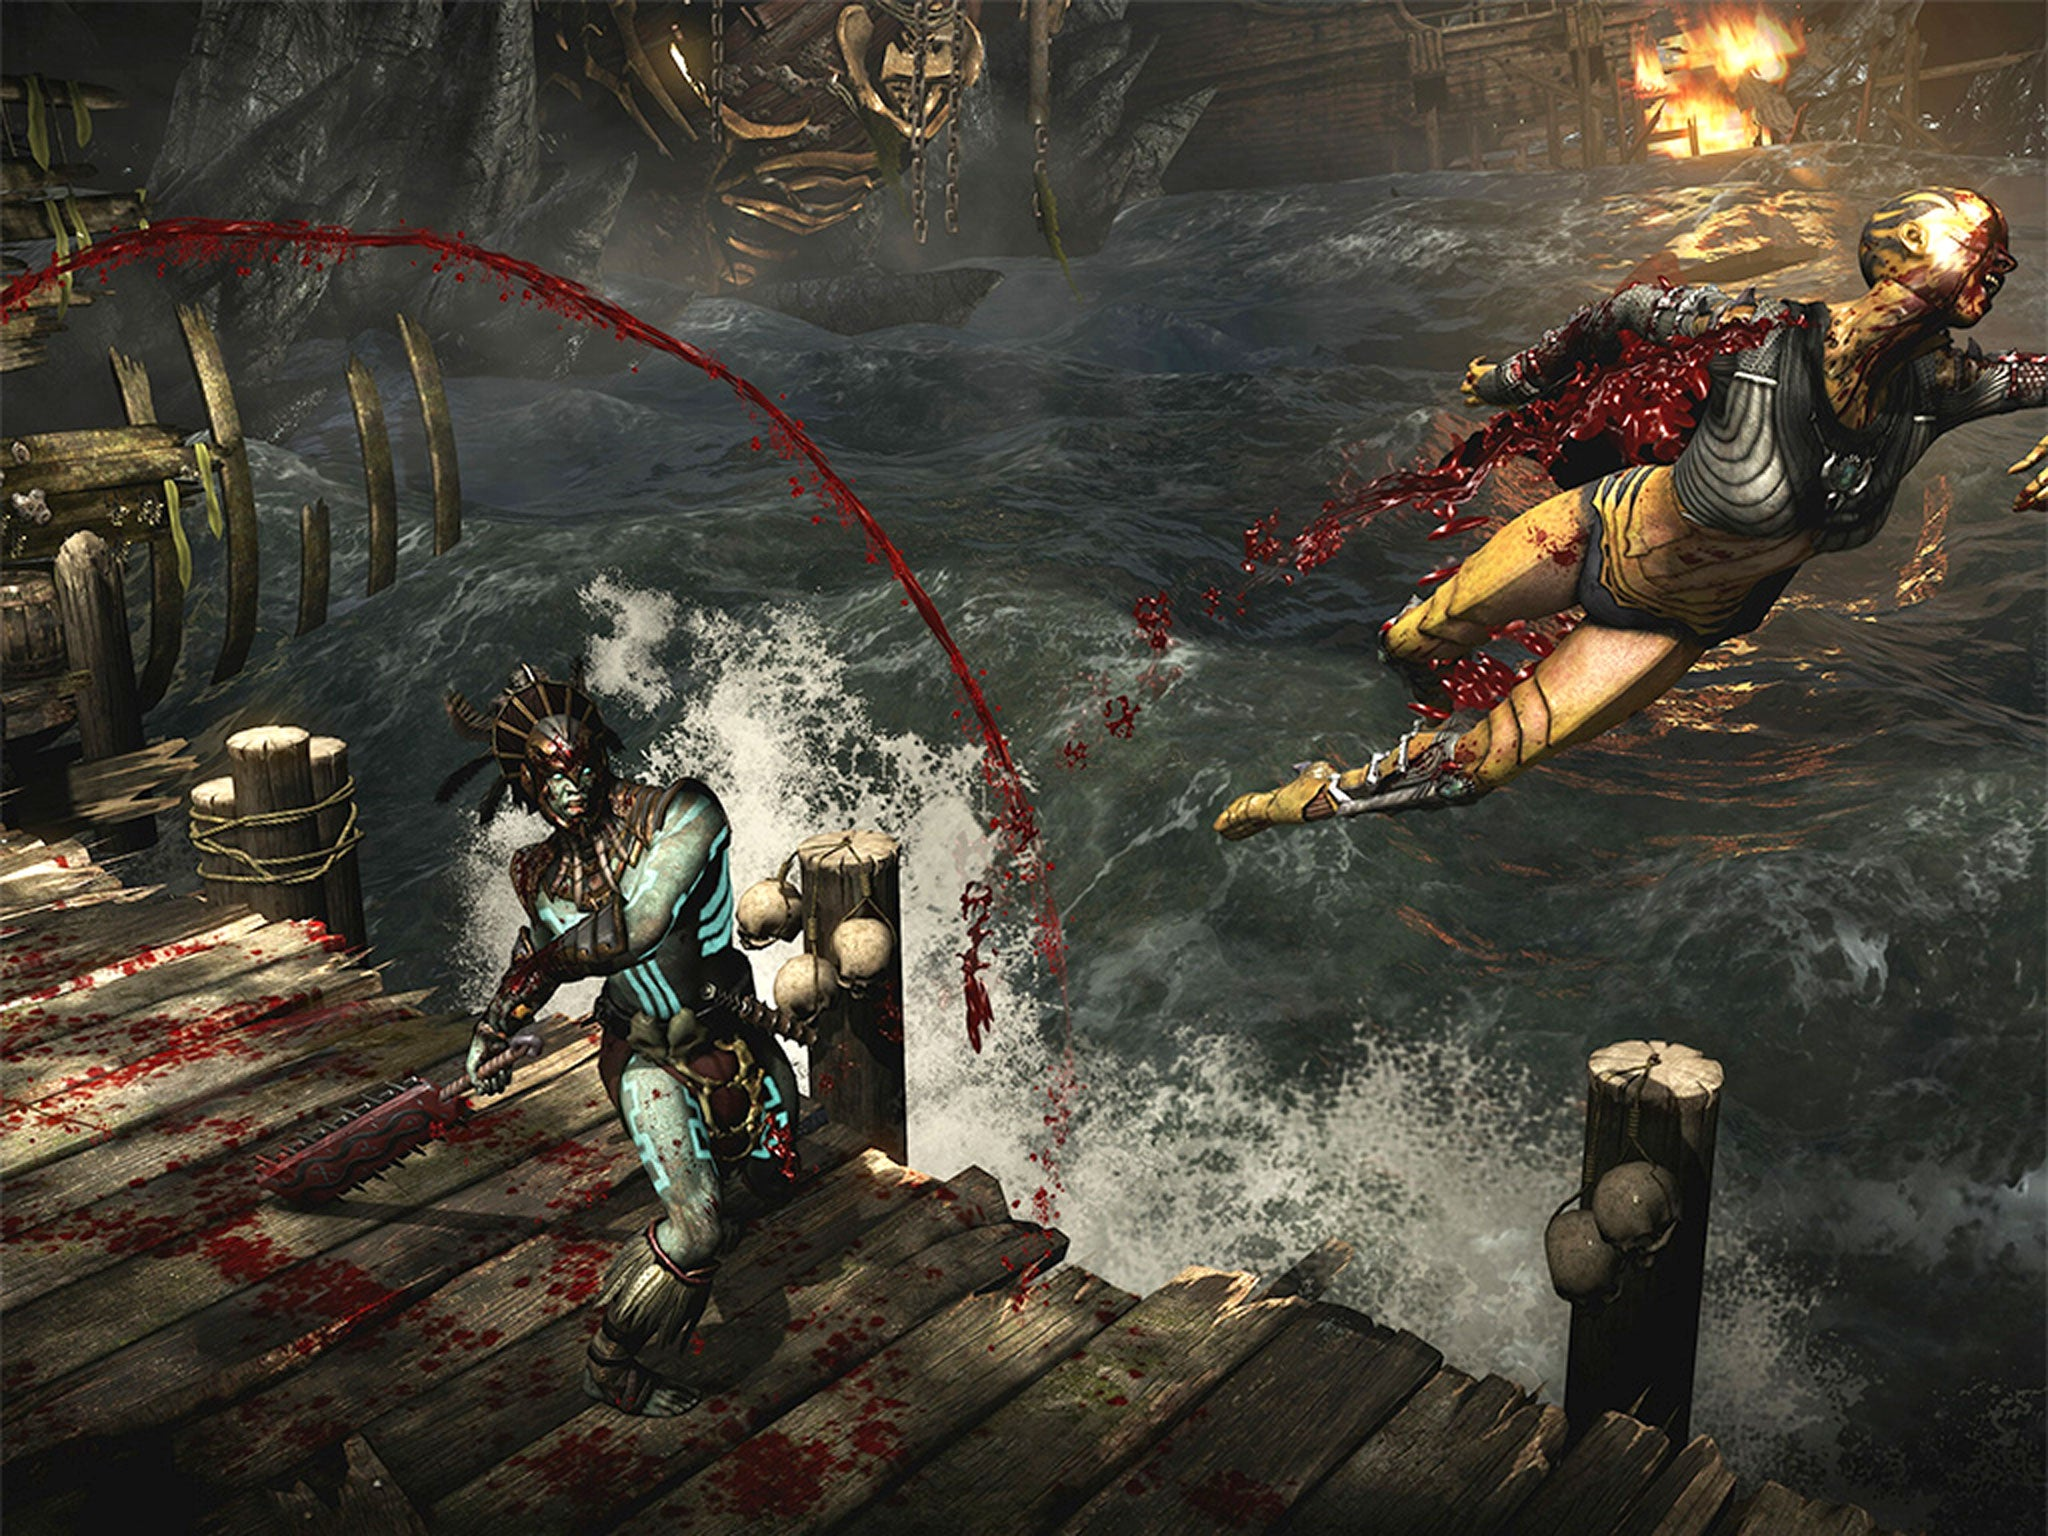 Mortal Kombat X; Titan Souls; The Trace: Murder Mystery Game, gaming reviews   The Independentindependent_brand_ident_LOGOUntitled